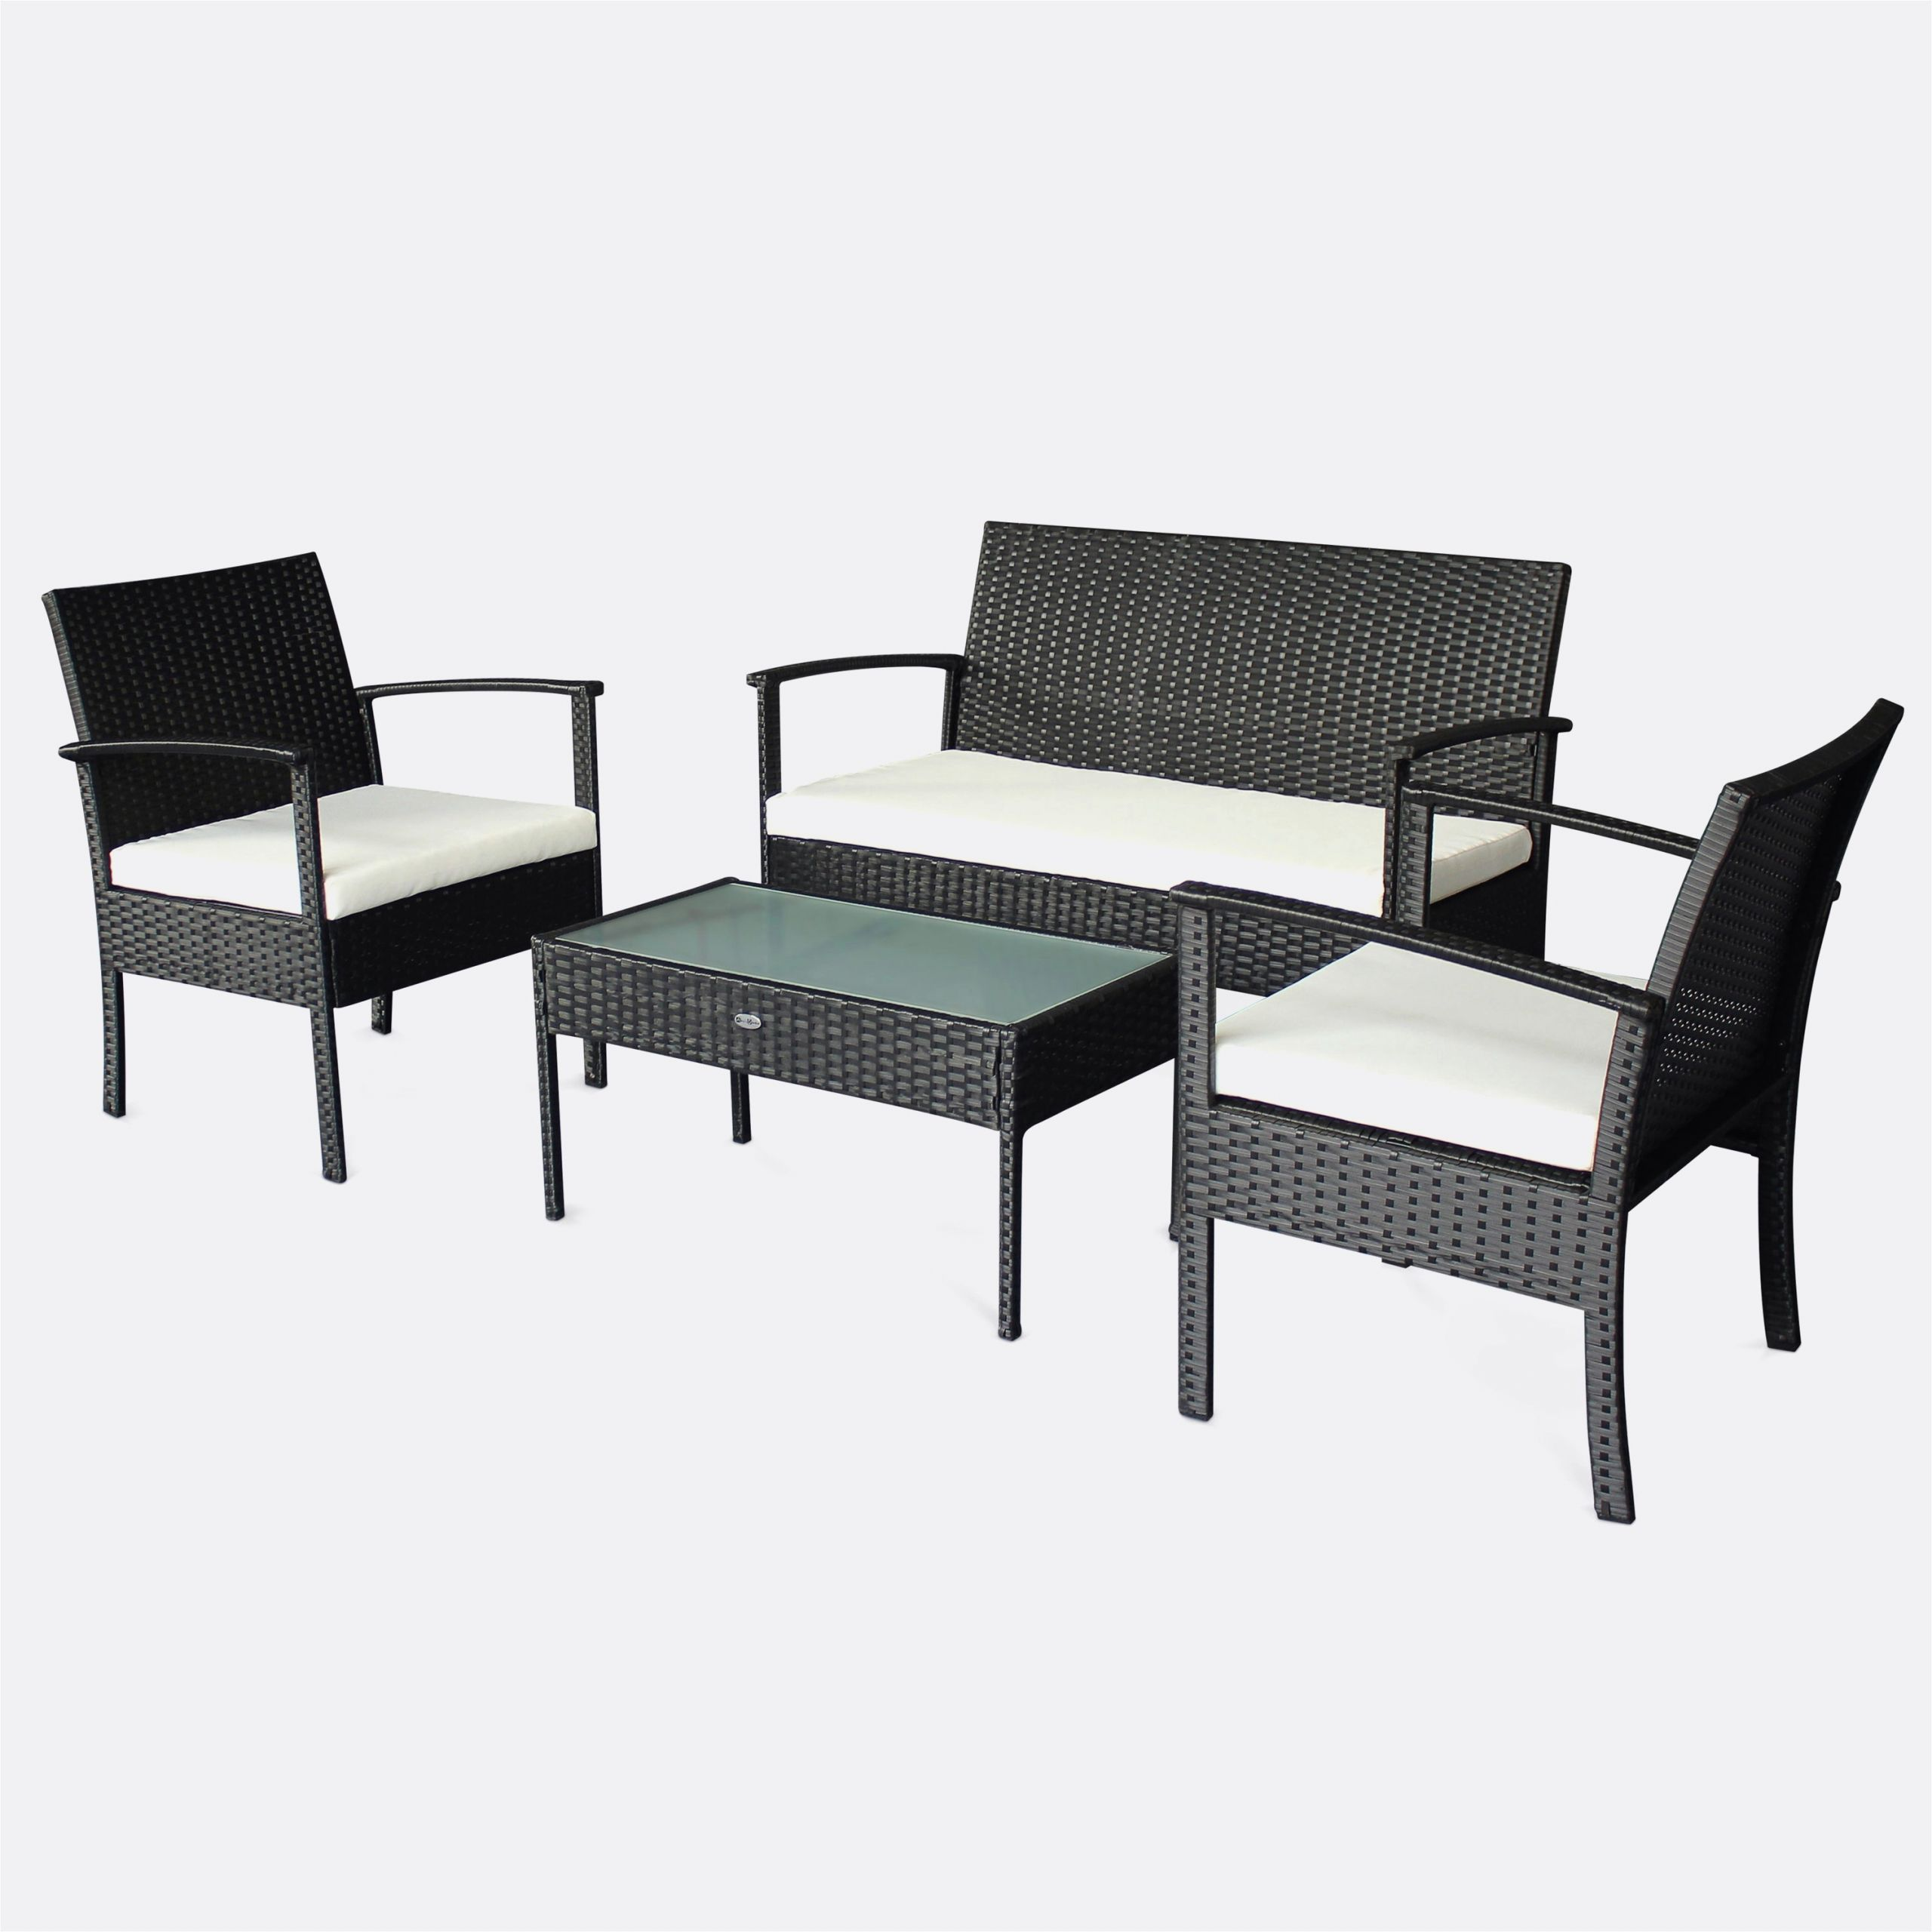 luxe galette de chaise leroy merlin chaise salon jardin chaise bambou frais galette chaise jardin suggestions